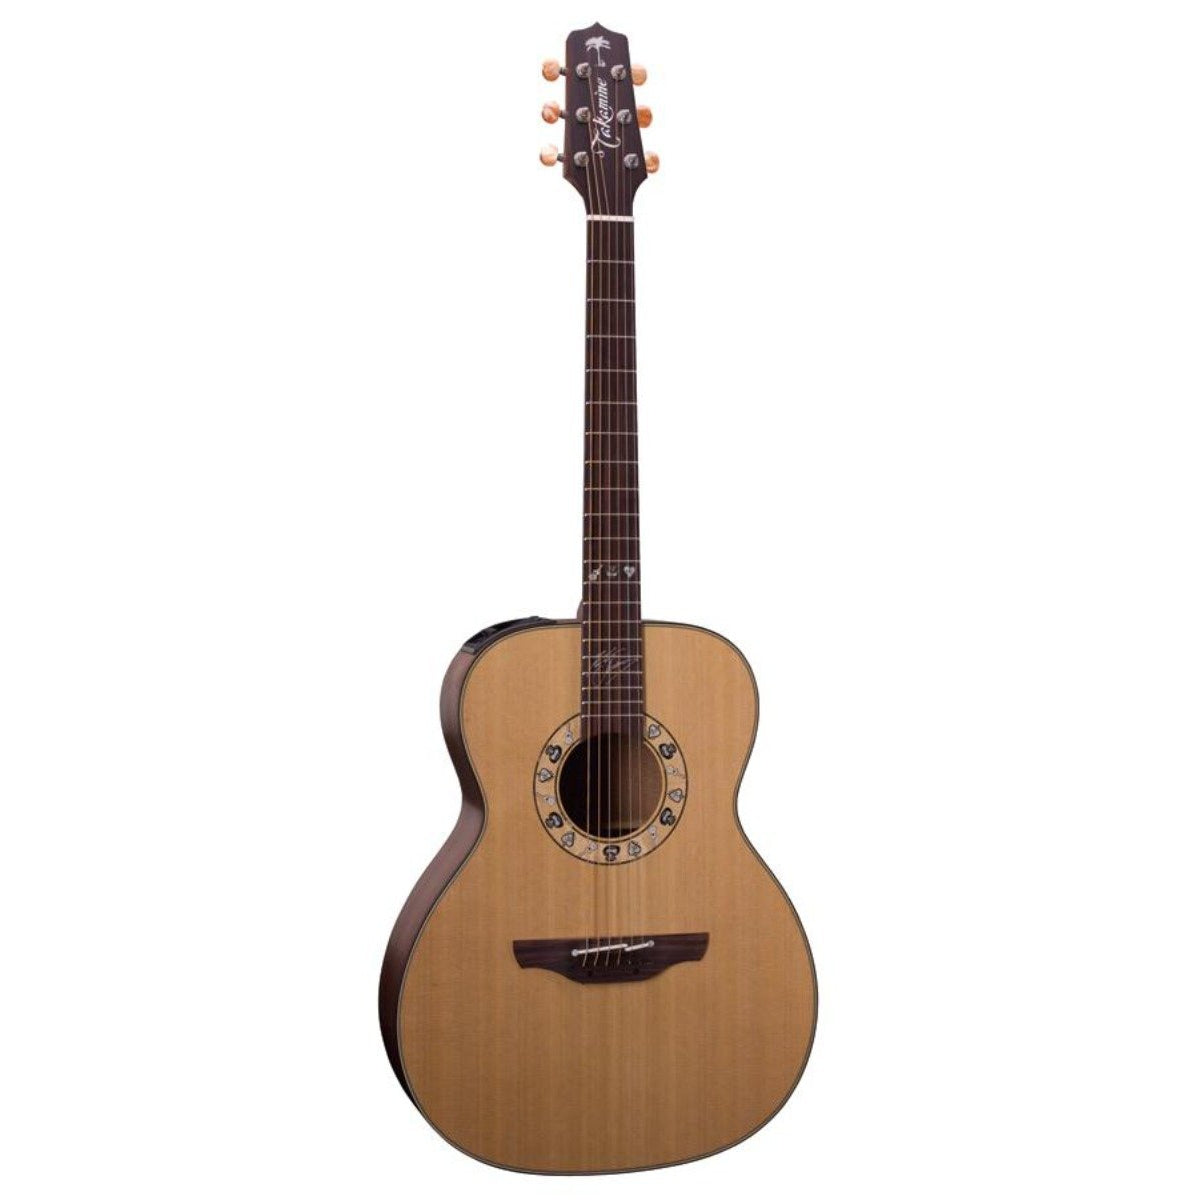 TAKAMINE KENNY CHESNEY ARTIST SERIES ORCHESTRAL ACOUSTIC/ELECTRIC GUITAR W/ HARDCASE - Arties Music Online